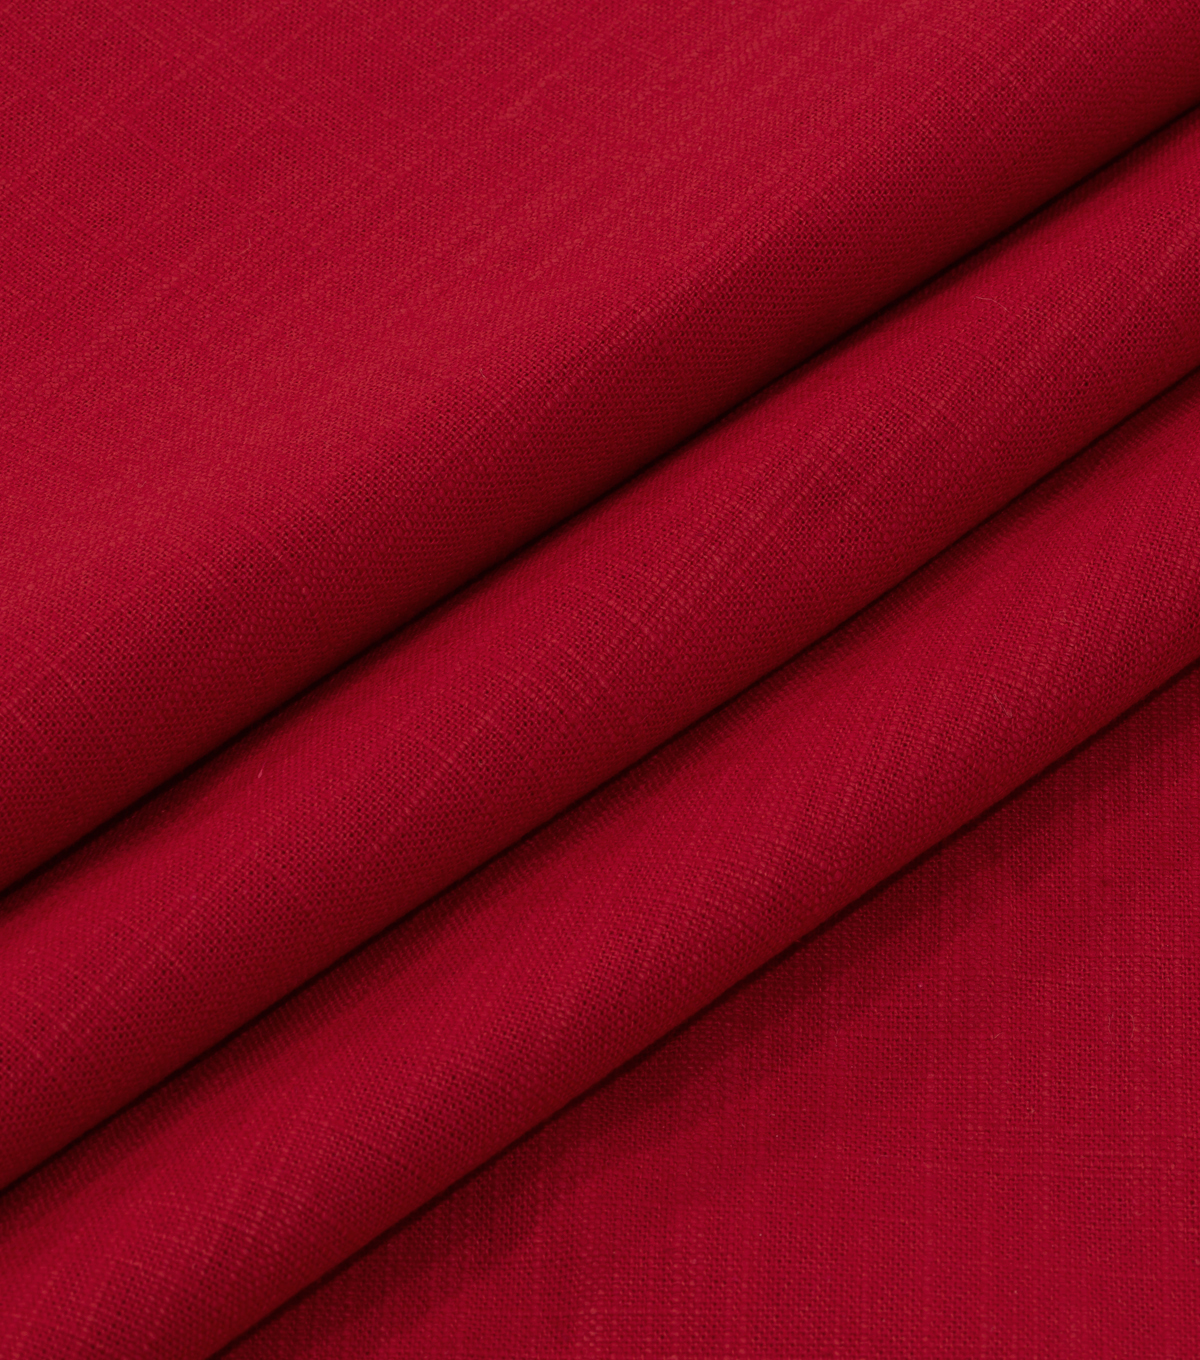 Robert Allen @ Home Lightweight Decor Fabric 54\u0022-Slubbed Weave Red Lacquer